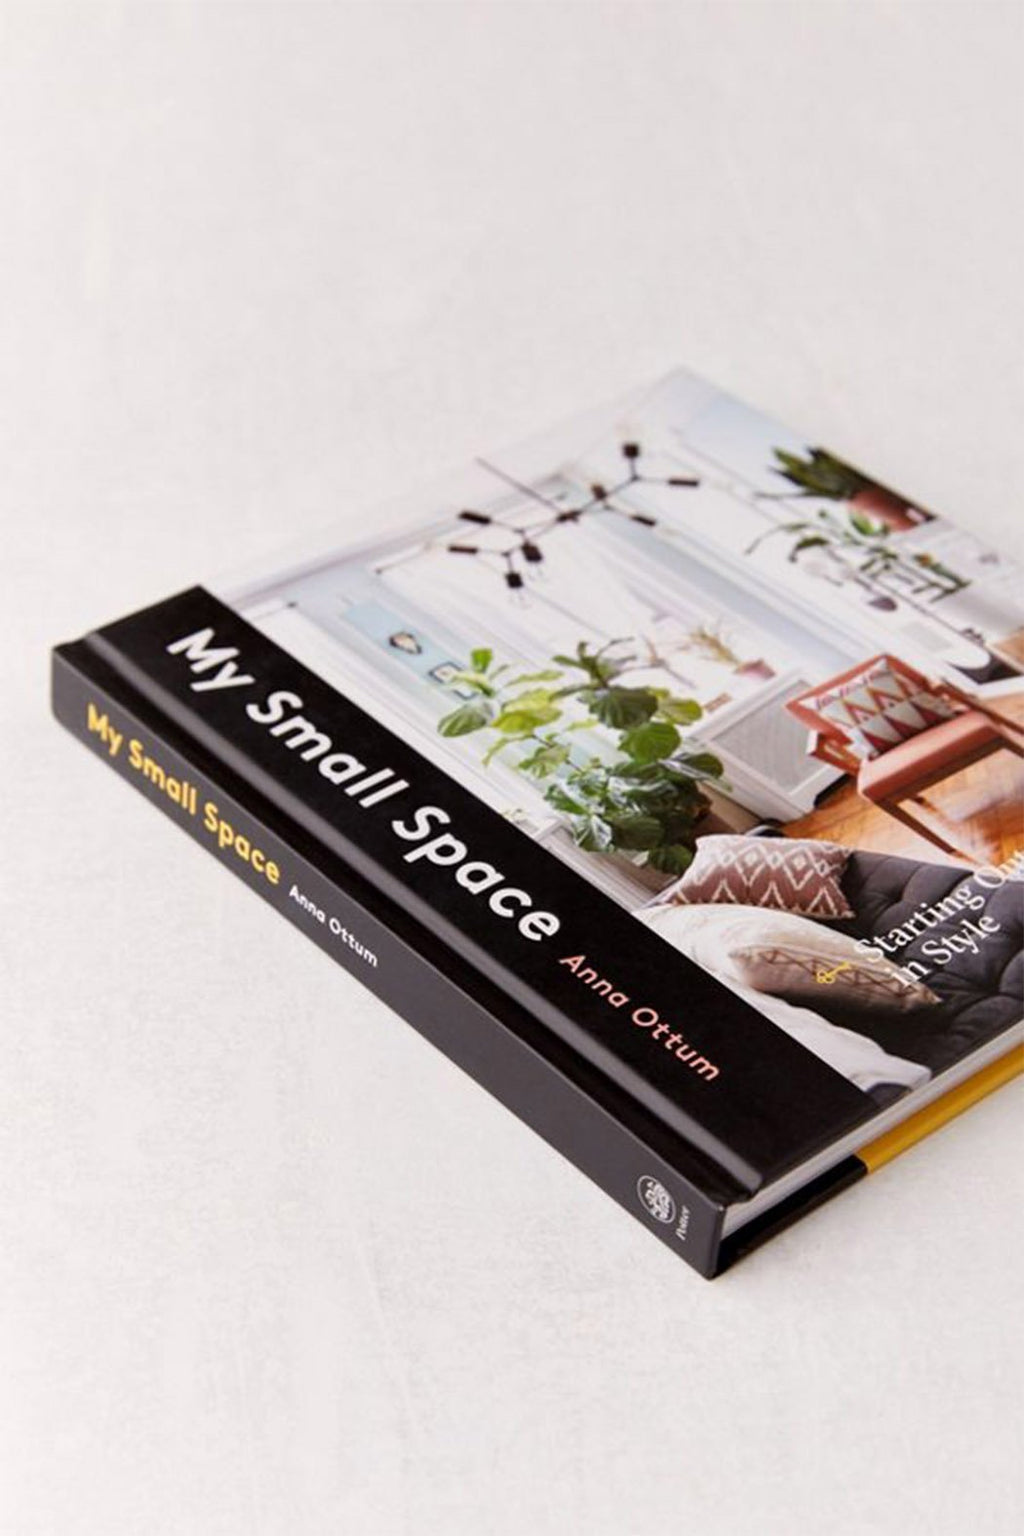 EcoVibe Style - My Small Space: Starting Out in Style by Anna Ottum, Book